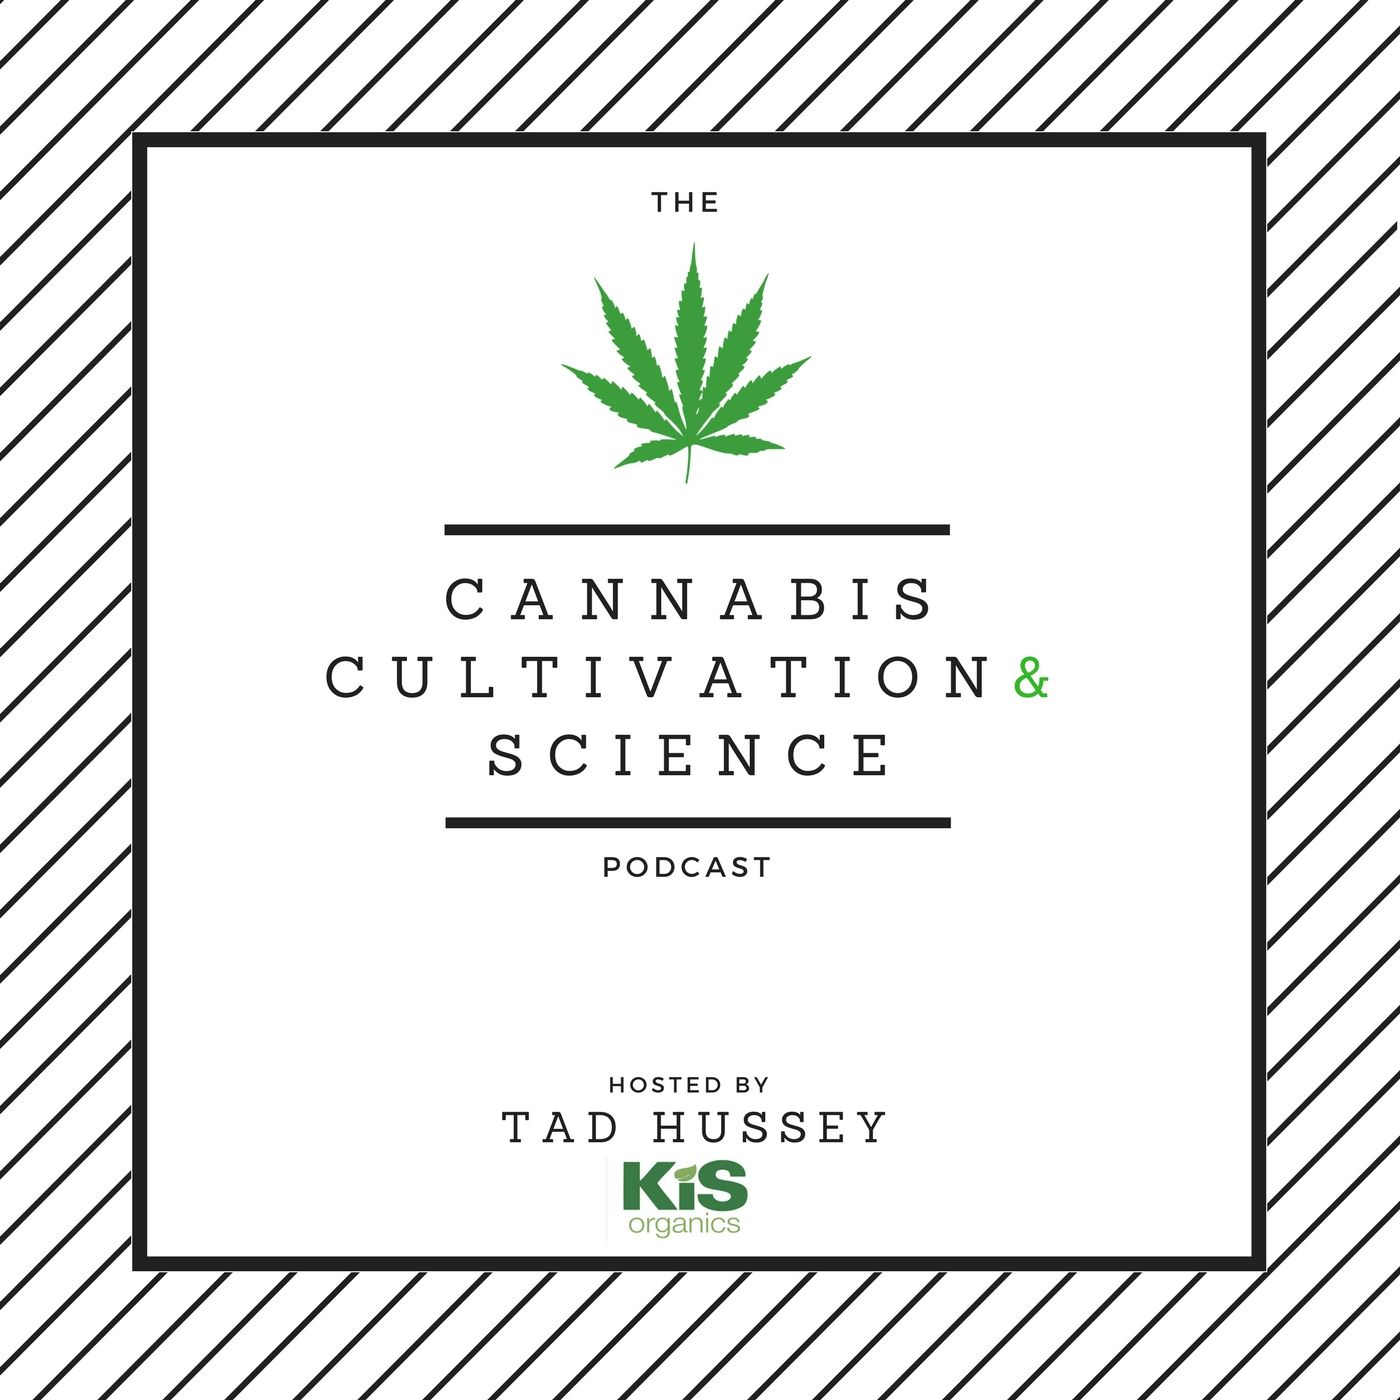 Episode 57: Published Research on Cannabis with Dr. Deron Caplan